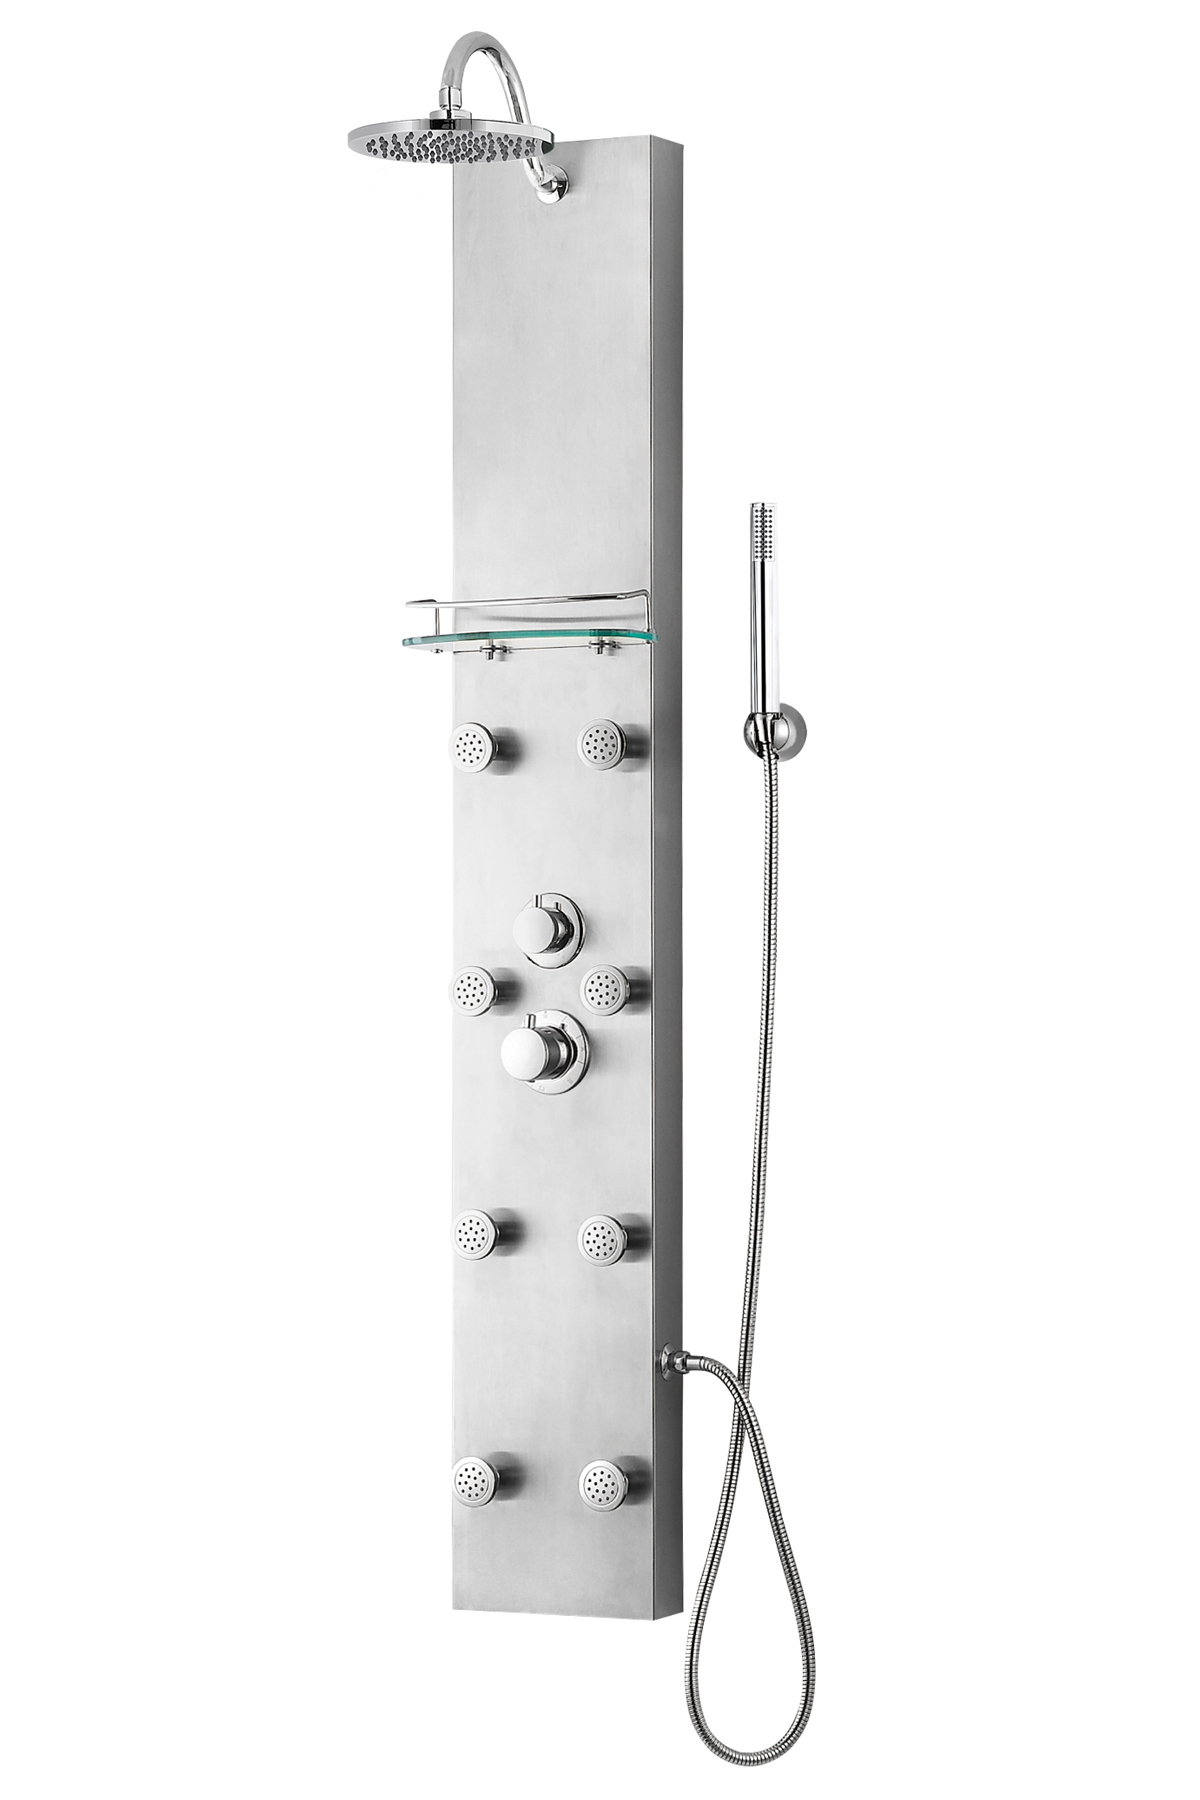 "57"" Thermostatic Shower Panel with Overhead Rainfall Showerhead"